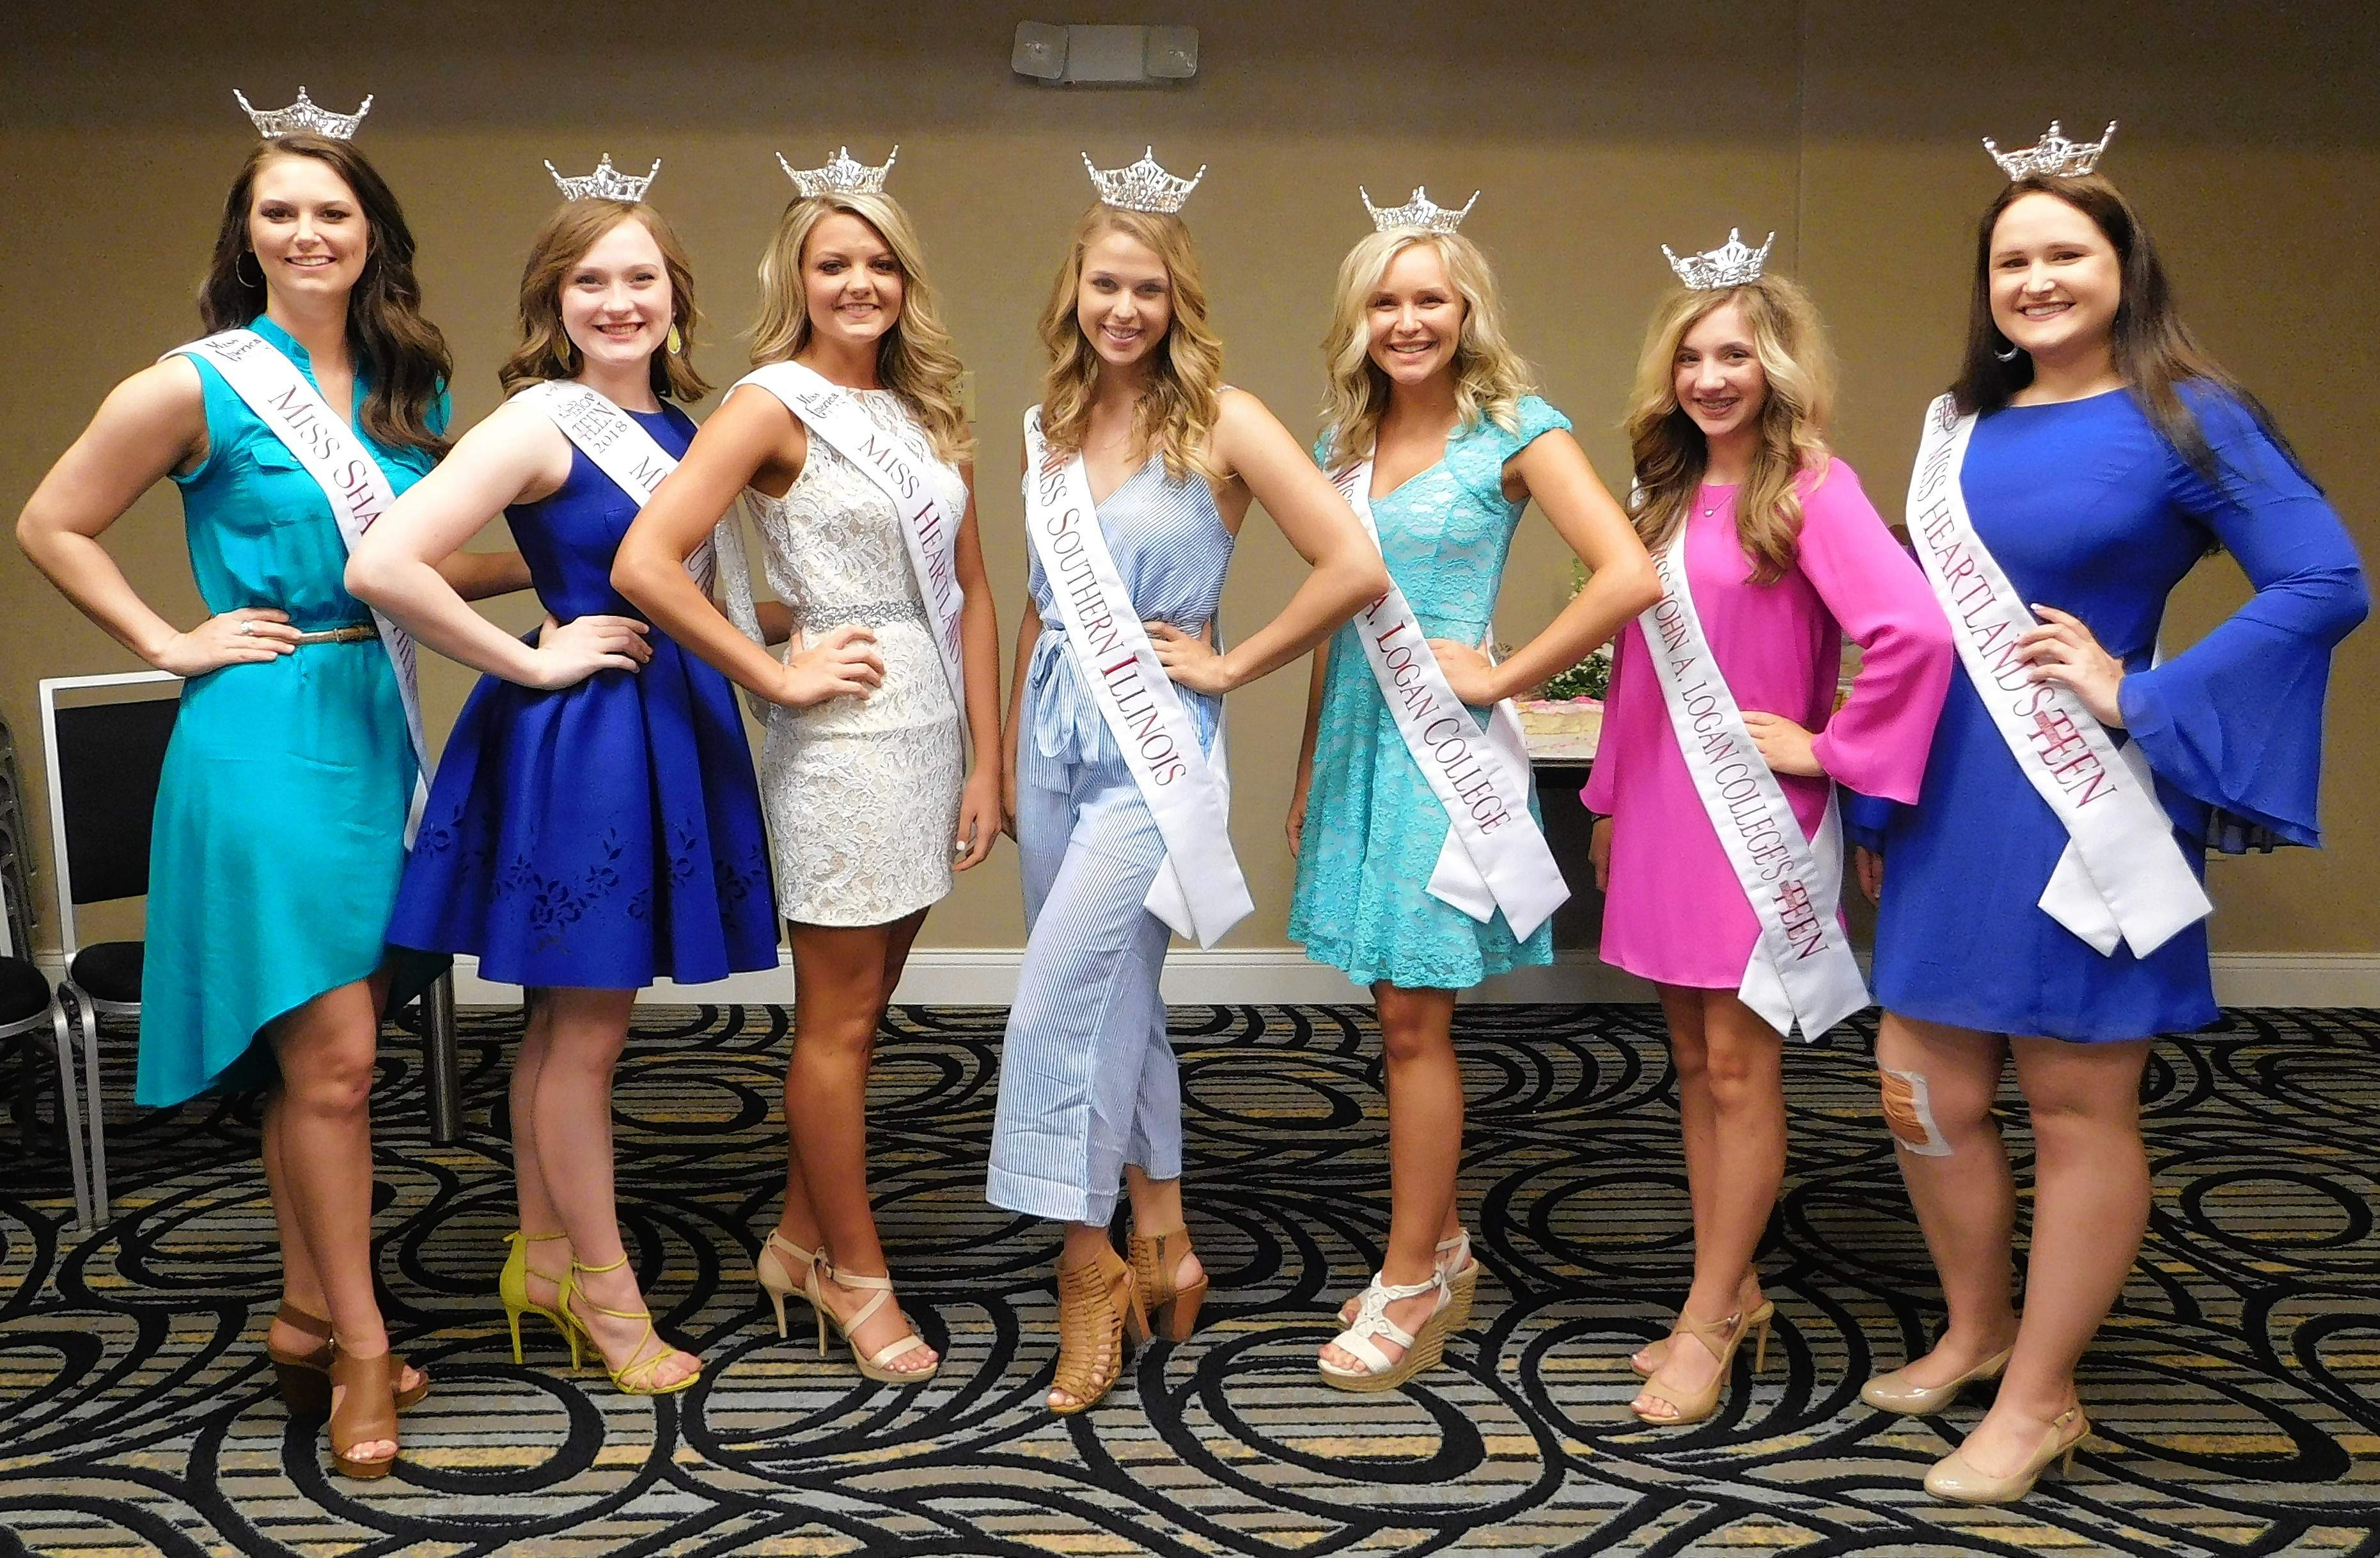 Mandy March, Victoria Shore, Breana Bagley, Brittany Albrecht, Darcy Dreyer, Tara Kay Tanner, and Anna Madura meet at the Marion Holiday Inn Express Sunday afternoon to kick off Miss Illinois week.  The Miss Illinois and Miss Illinois Outstanding Teen competitions will be held at the Marion Cultural and Civic Center beginning on Wednesday.